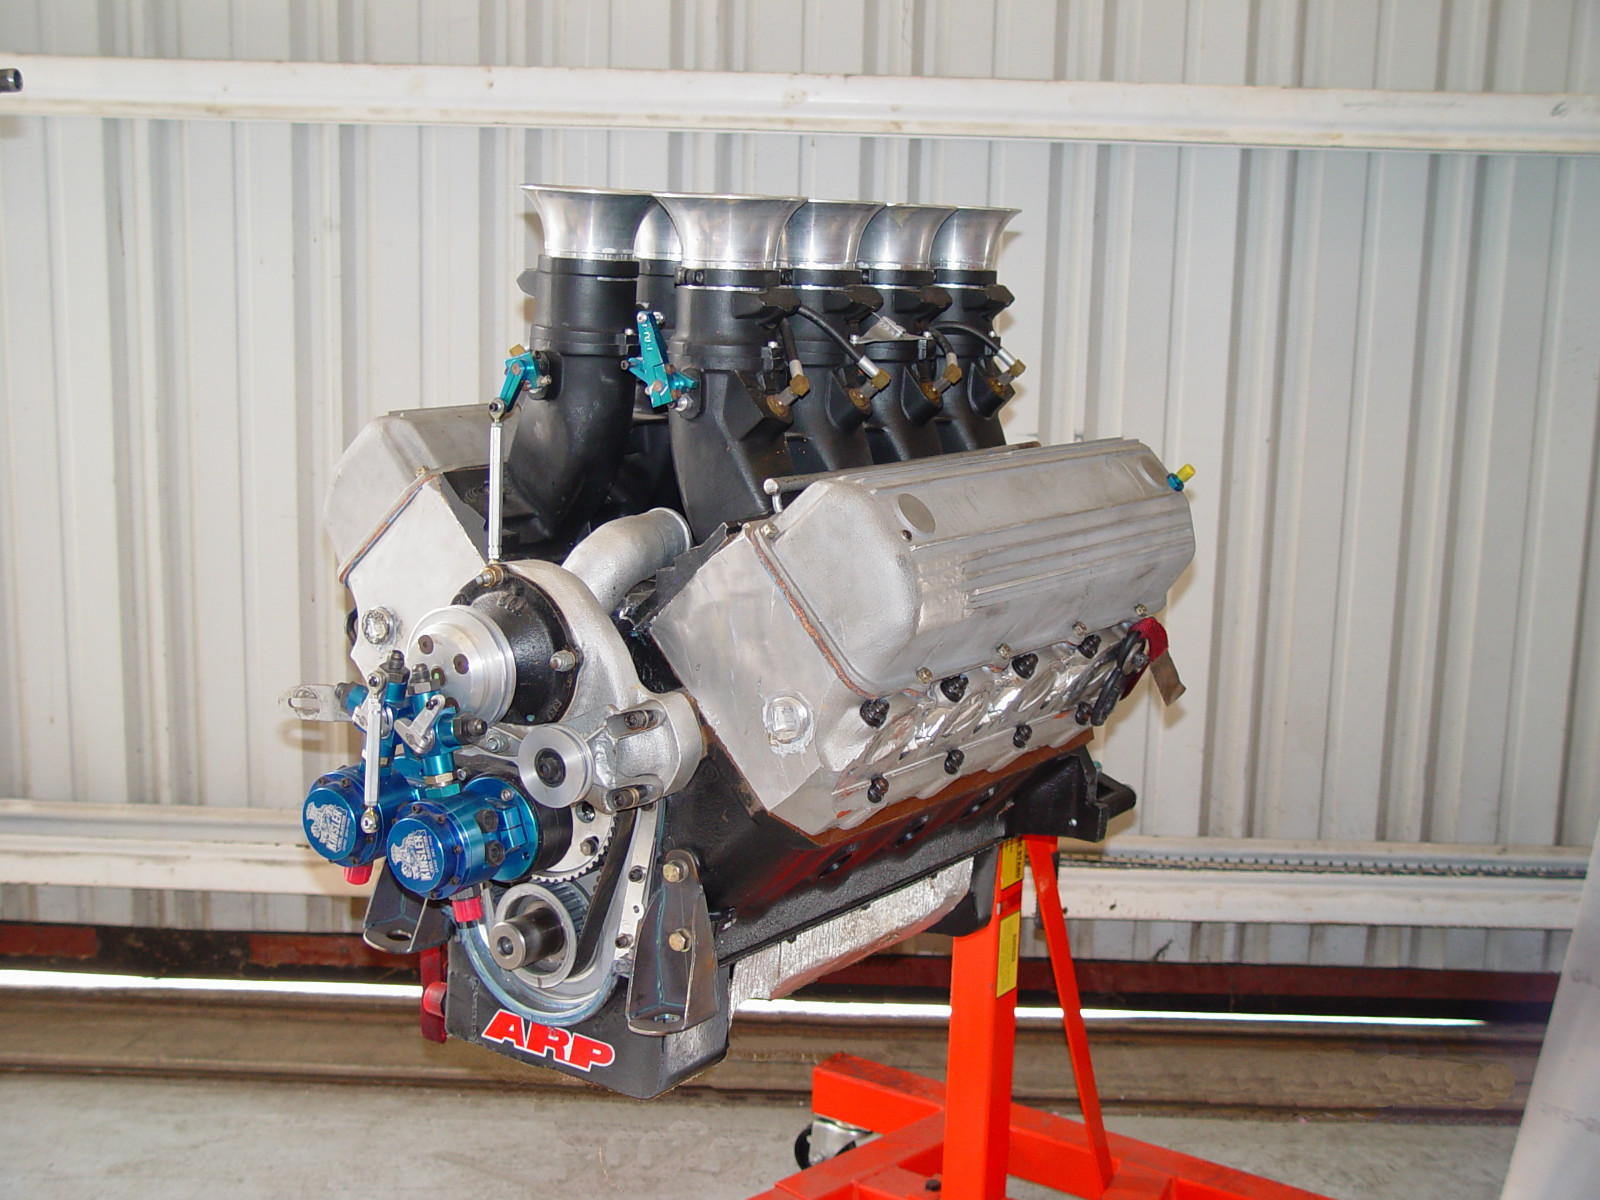 eBay Find: A 1200hp Naturally Aspirated Olds DRCE Engine That Was Supposed To Power A Racing Plane – Bombproof Build!